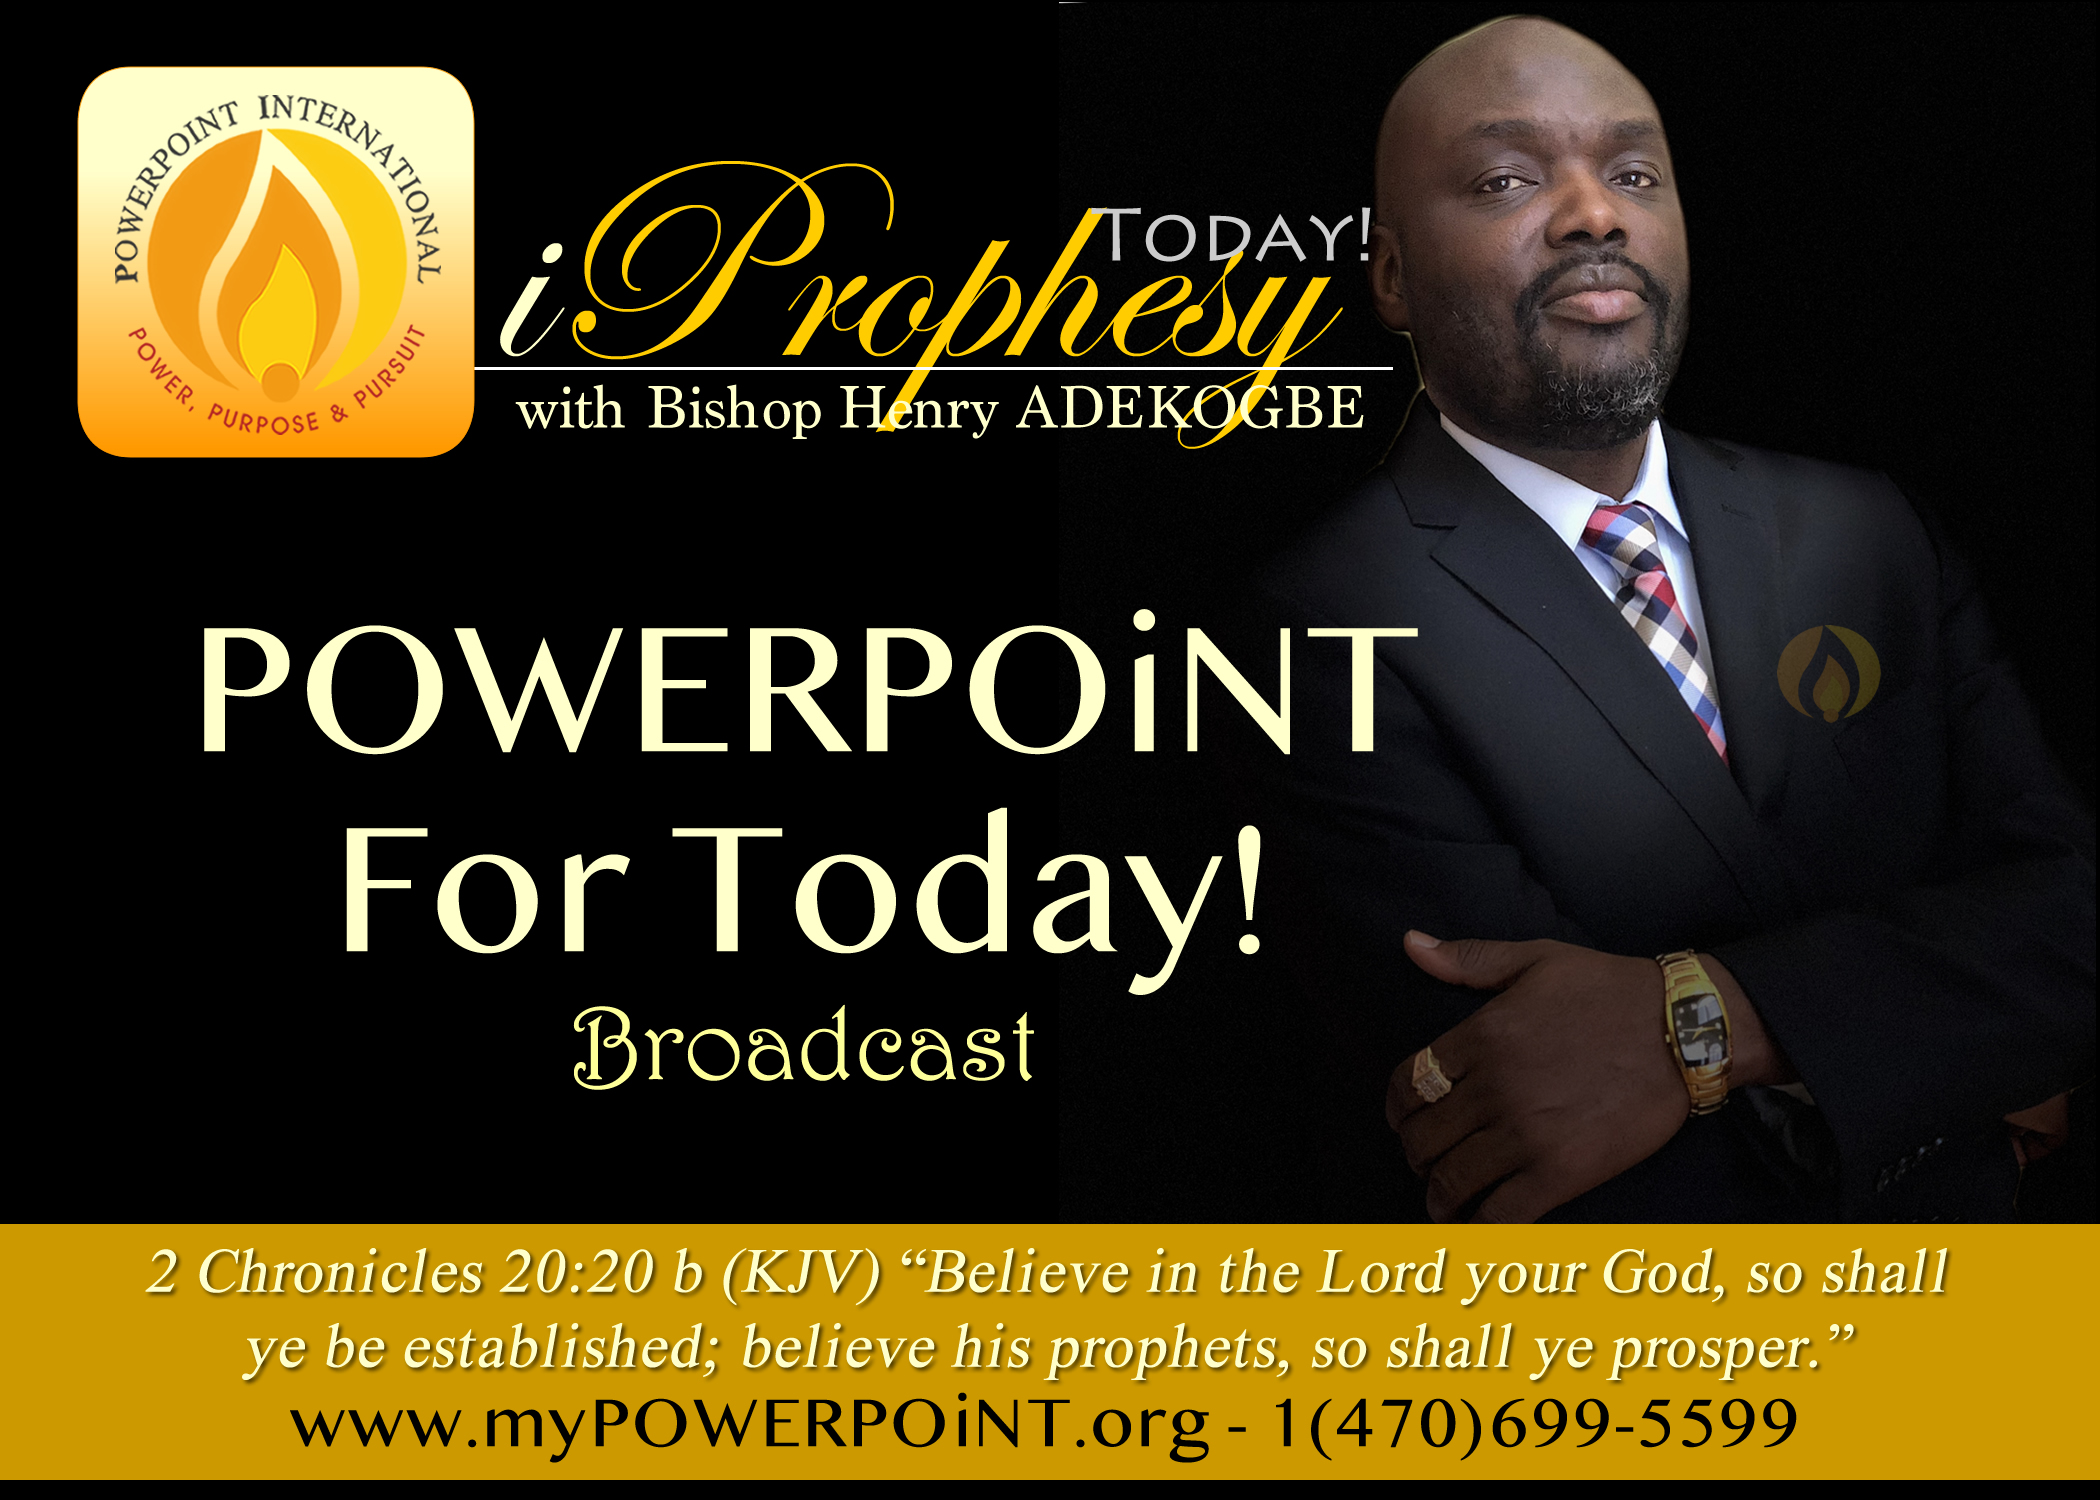 POWERPOiNT For Today with BishopHenryADEKOGBE